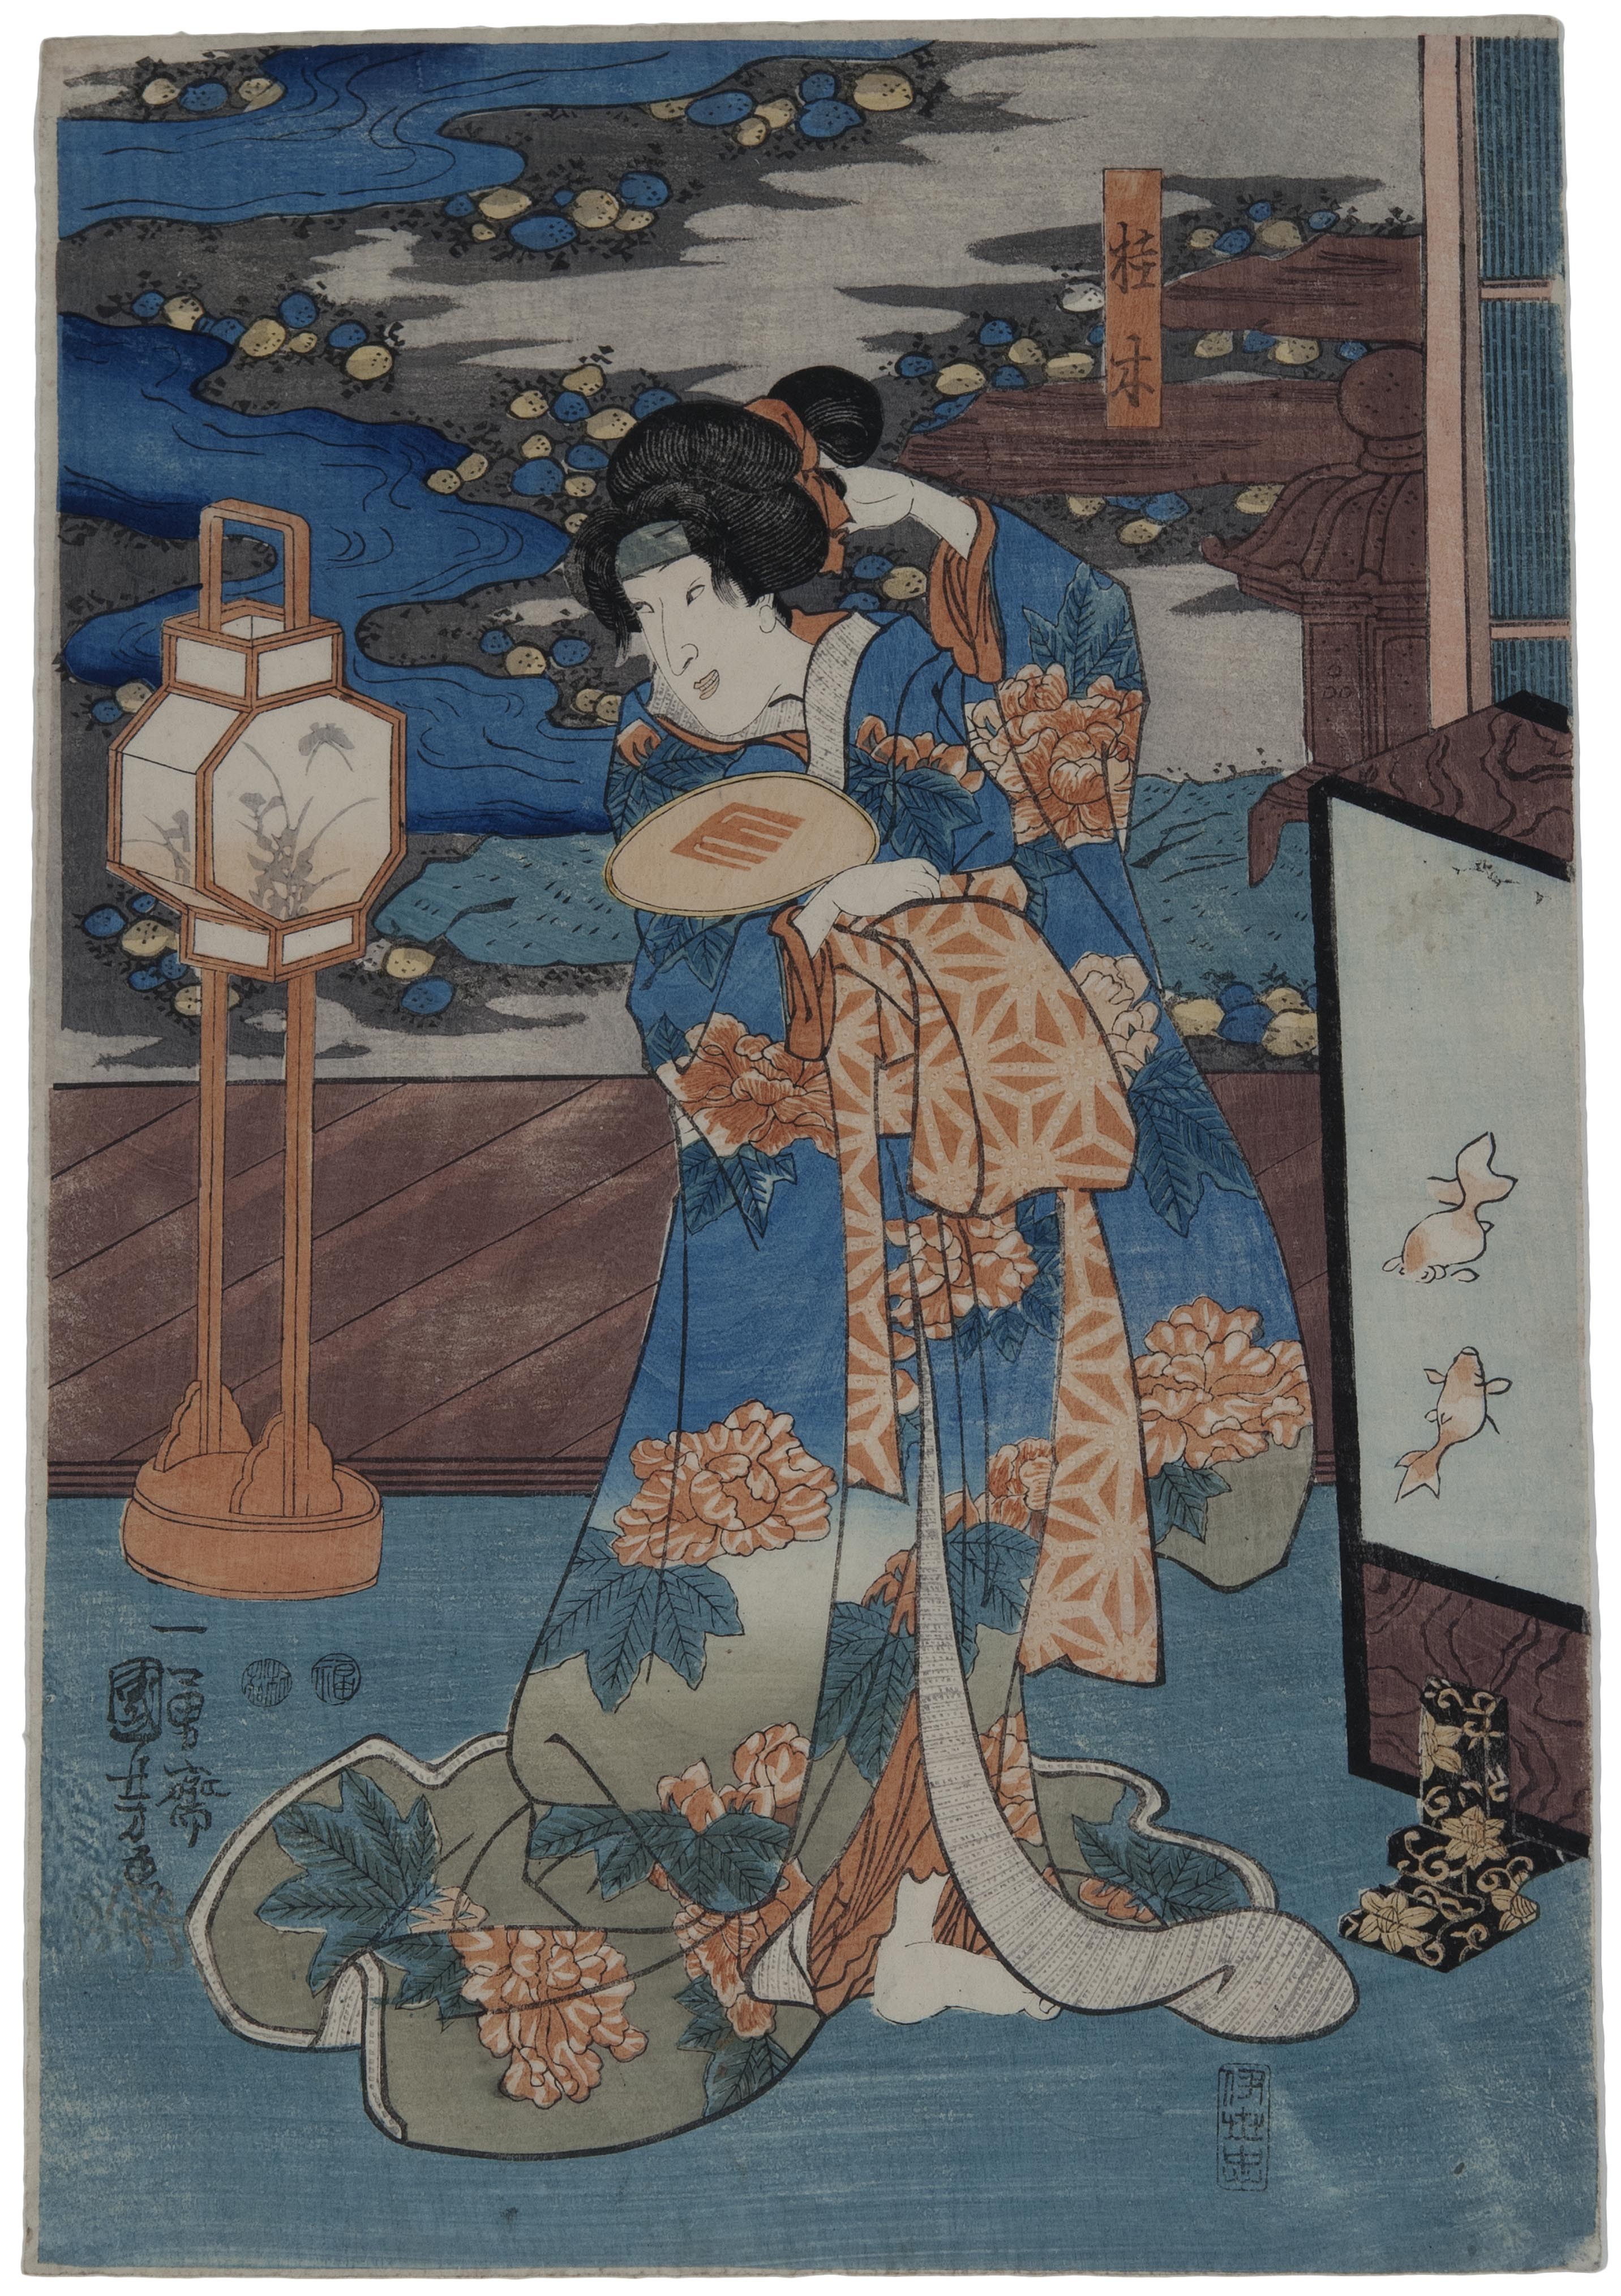 Utagawa Kuniyoshi, Actor as the courtesan Katsuragi, 1848-1858